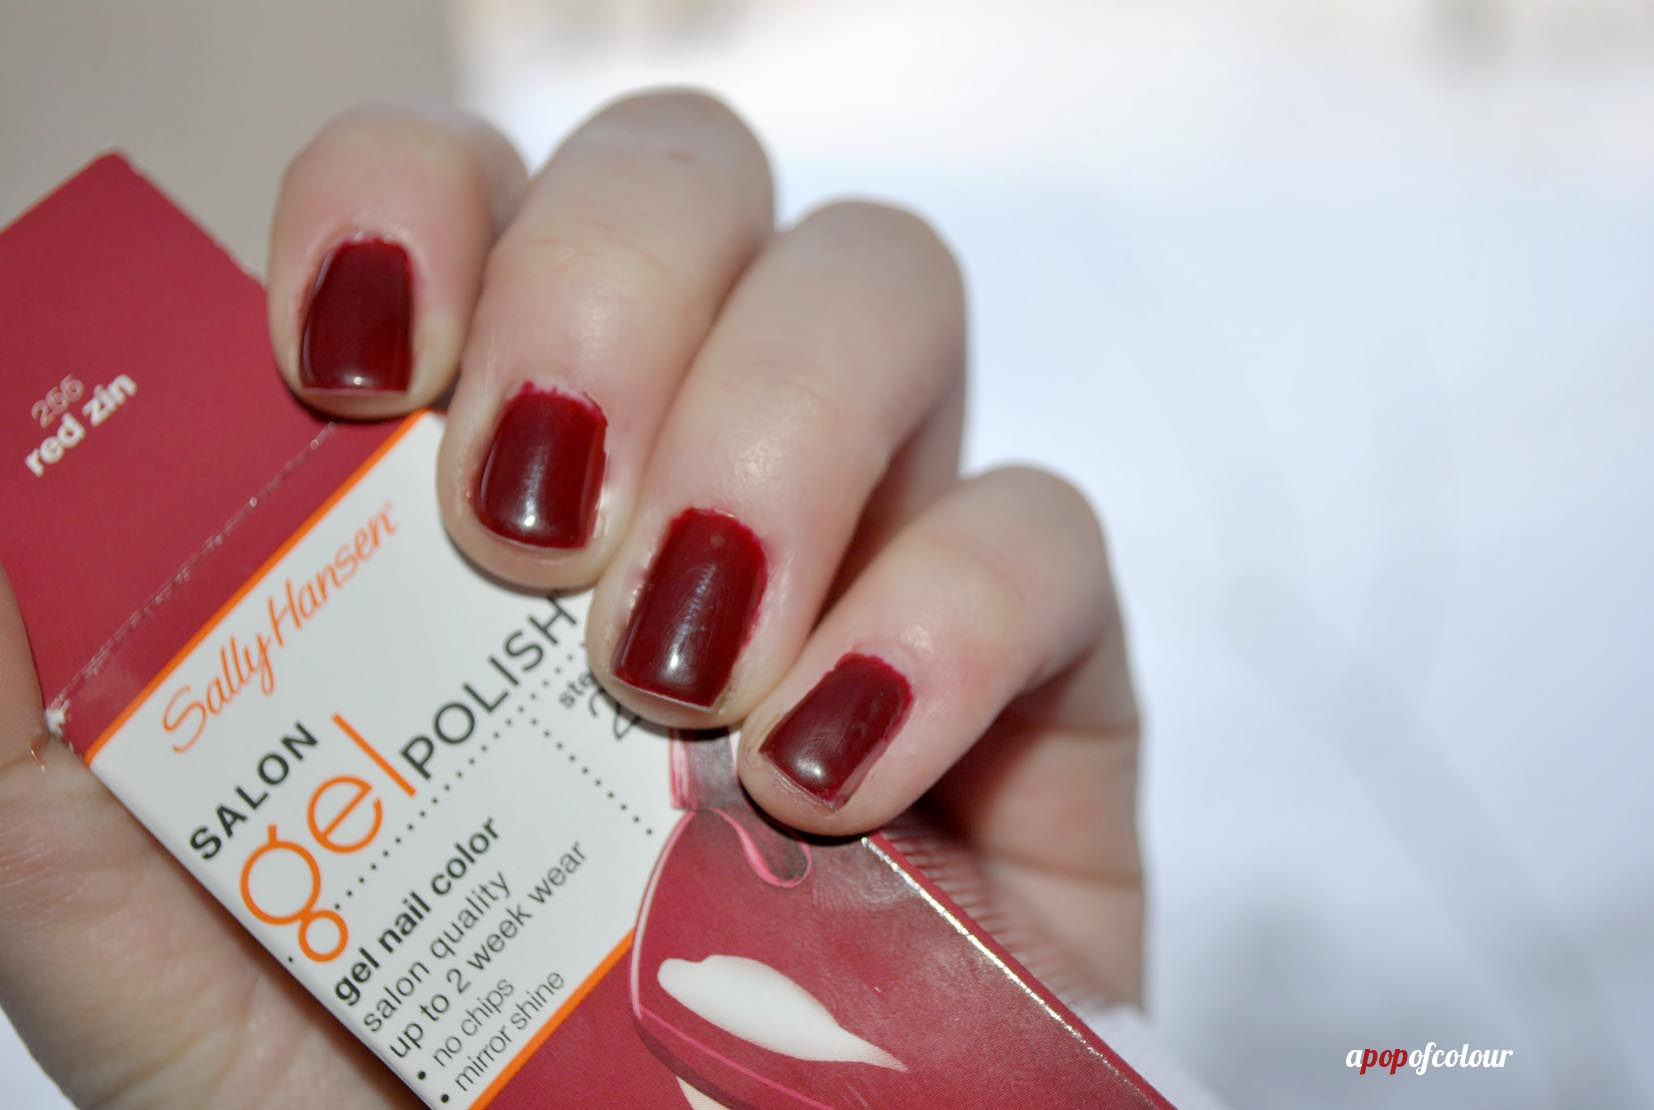 Incredigel? Sally Hansen Salon Gel Polish Starter Kit - A Pop of Colour